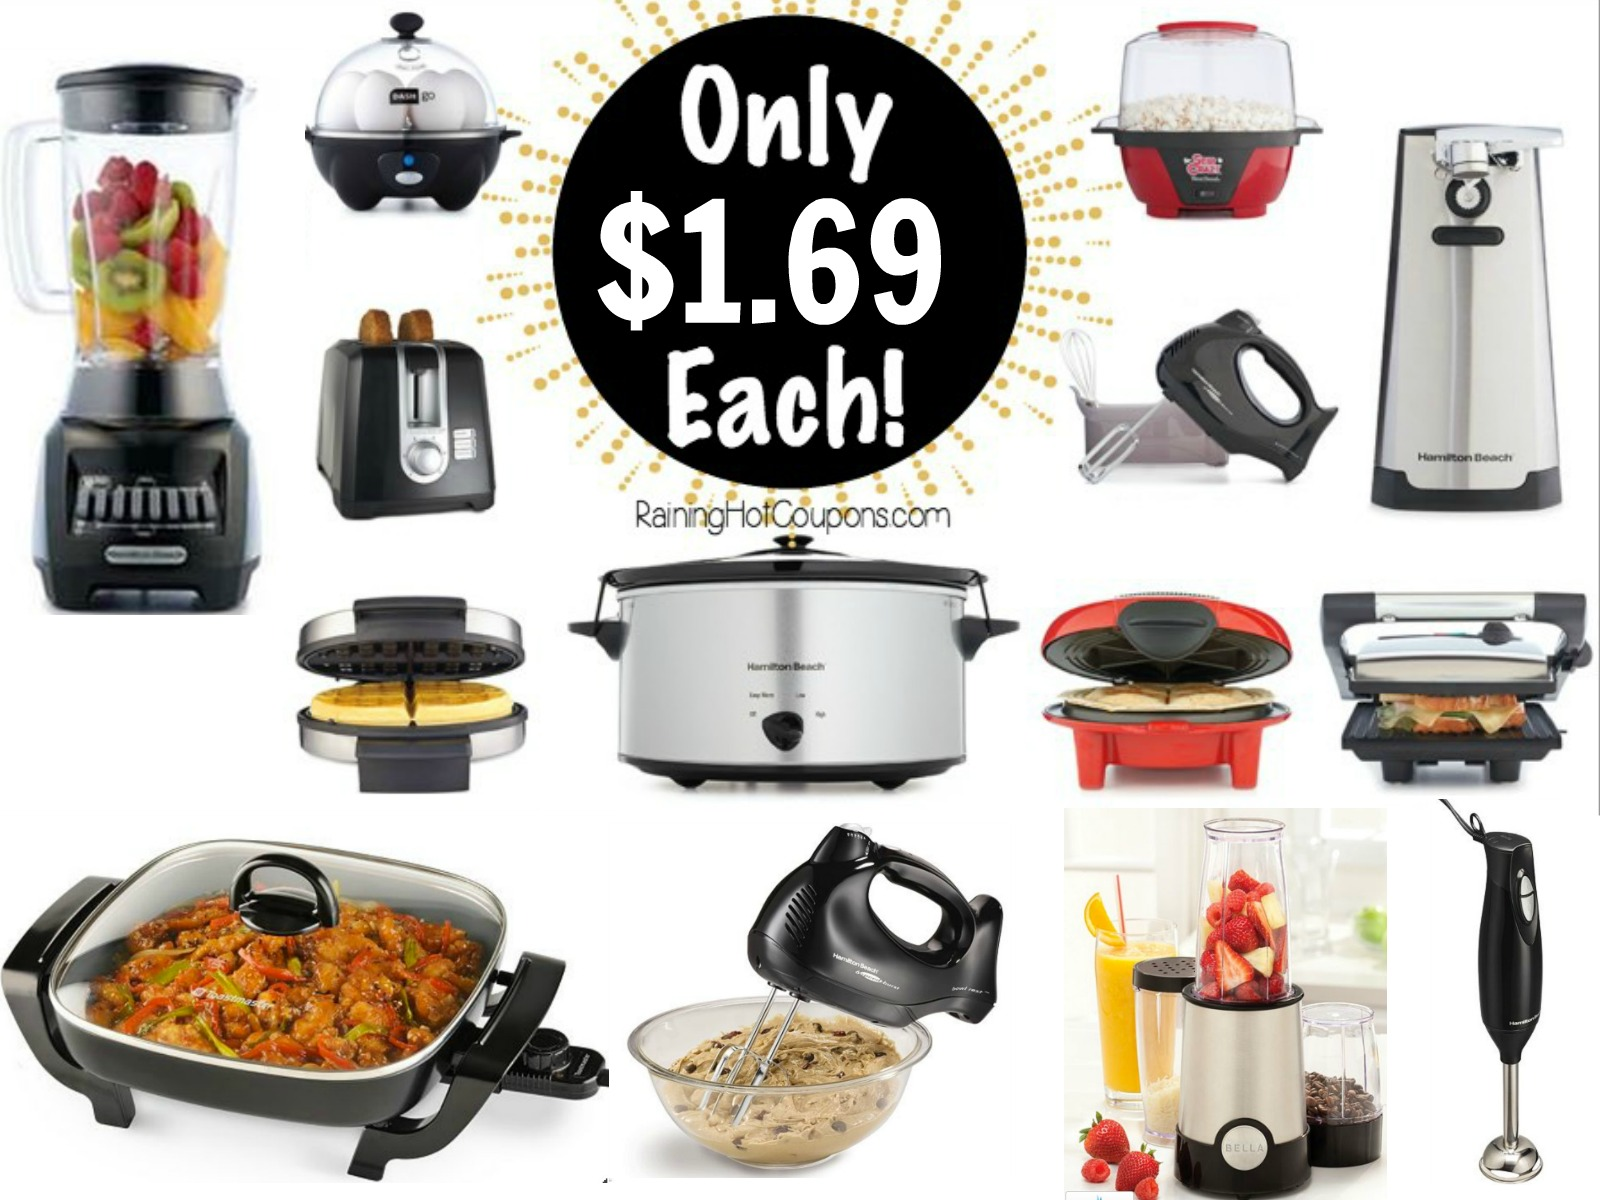 kohl u0027s black friday deals are live and there are some hot ones and i am posting all of them here  with this deal idea you will get 6 of the kitchen     hot  kohl u0027s  6 kitchen appliances only  1 69 each   239 99 value      rh   raininghotcoupons com